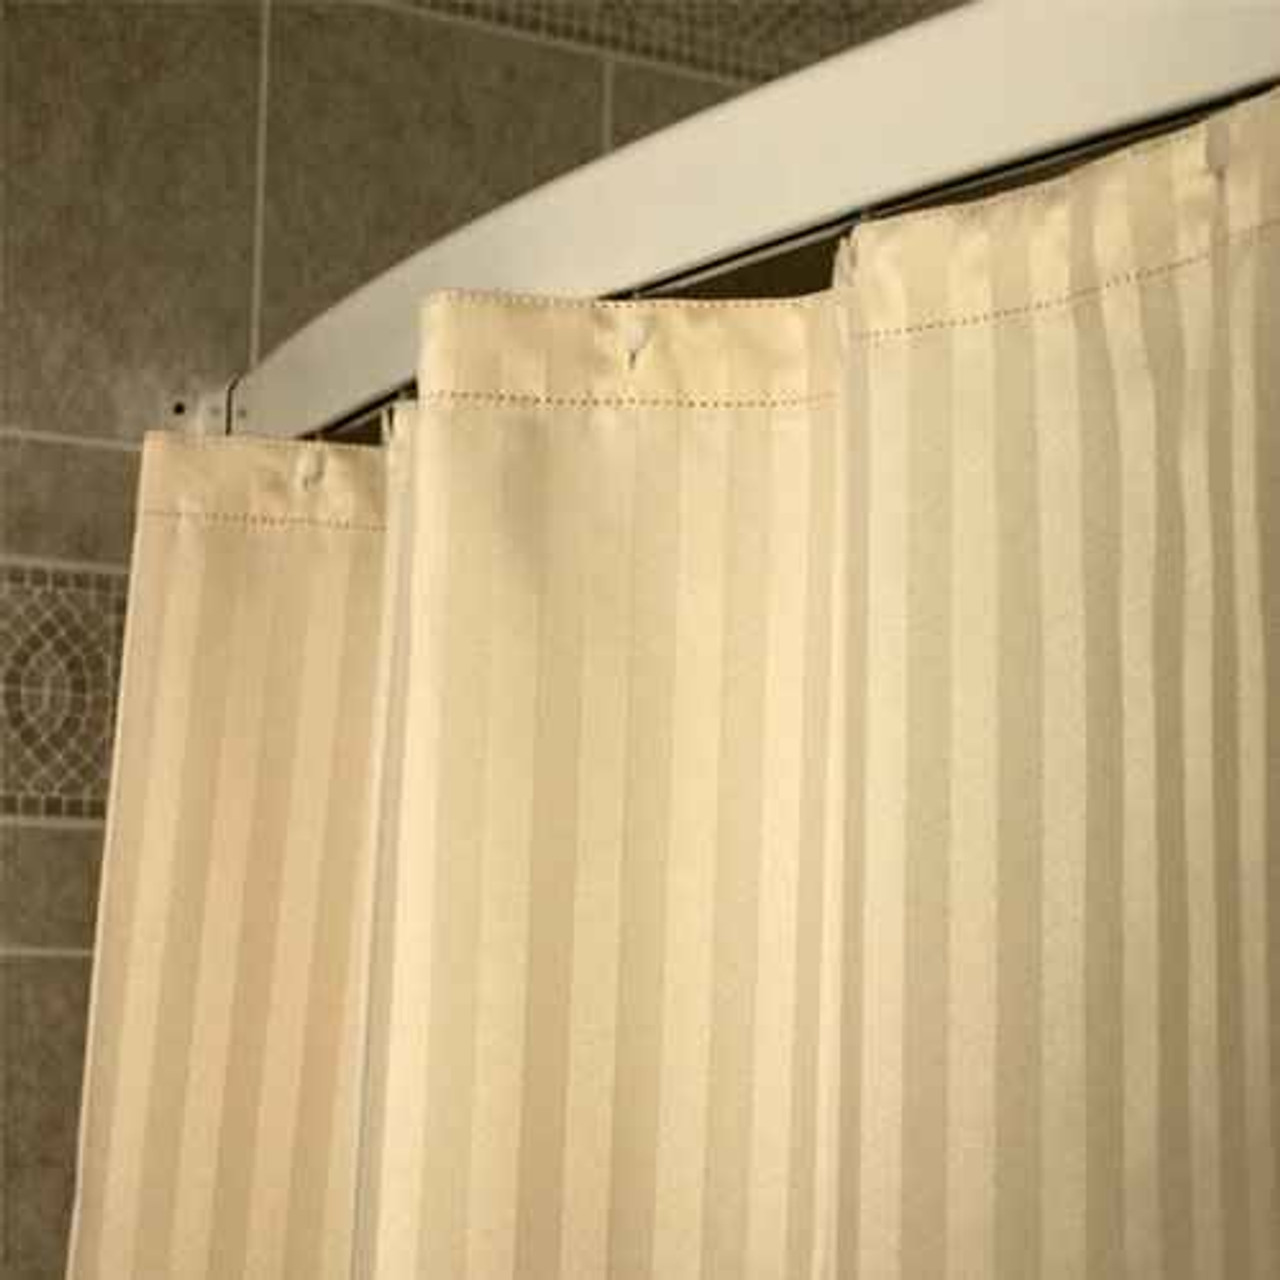 Kartri KARTRIor SATEIN WOVENor POLYESTER SHOWER CURTAIN W/ SEWN EYELETS PACK OF 12